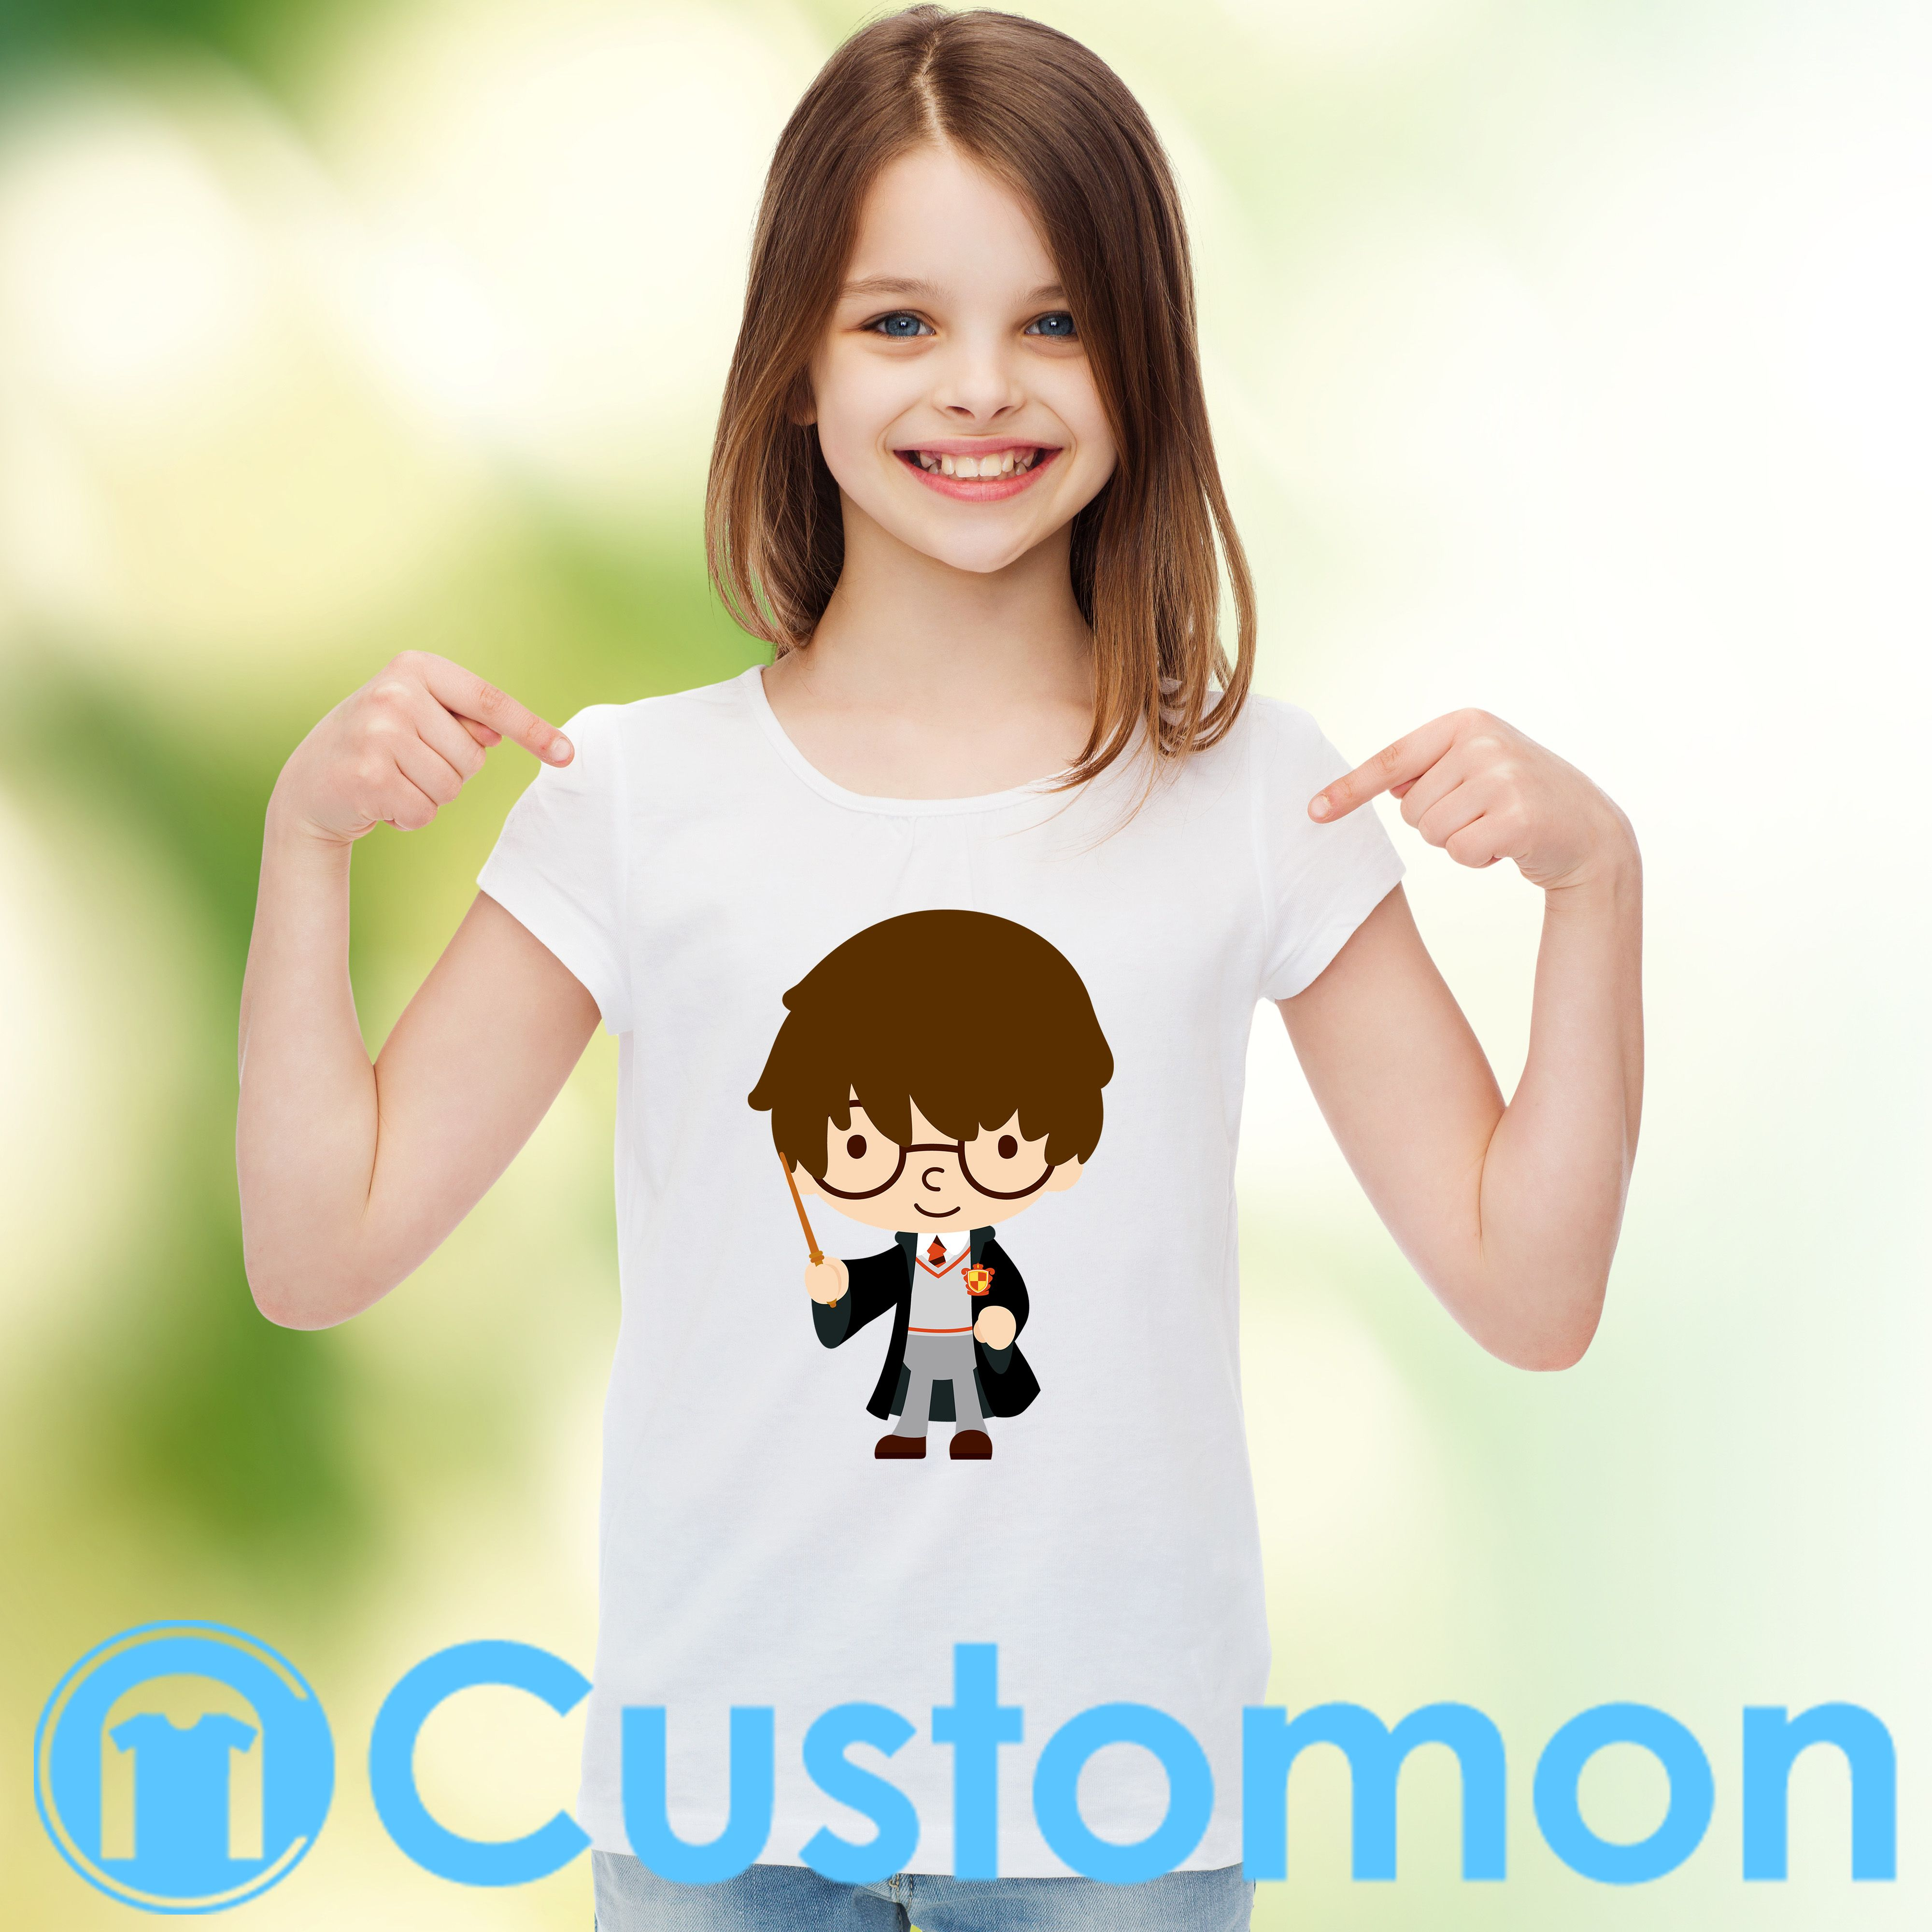 c87083a8 Harry Potter Youth T-shirt designer by #bluejean 👕 - #cartoon #harrypotter  #clipart #harry #potter #magic #albus #hagrit #ronweasley #snape #hogwarts  ...